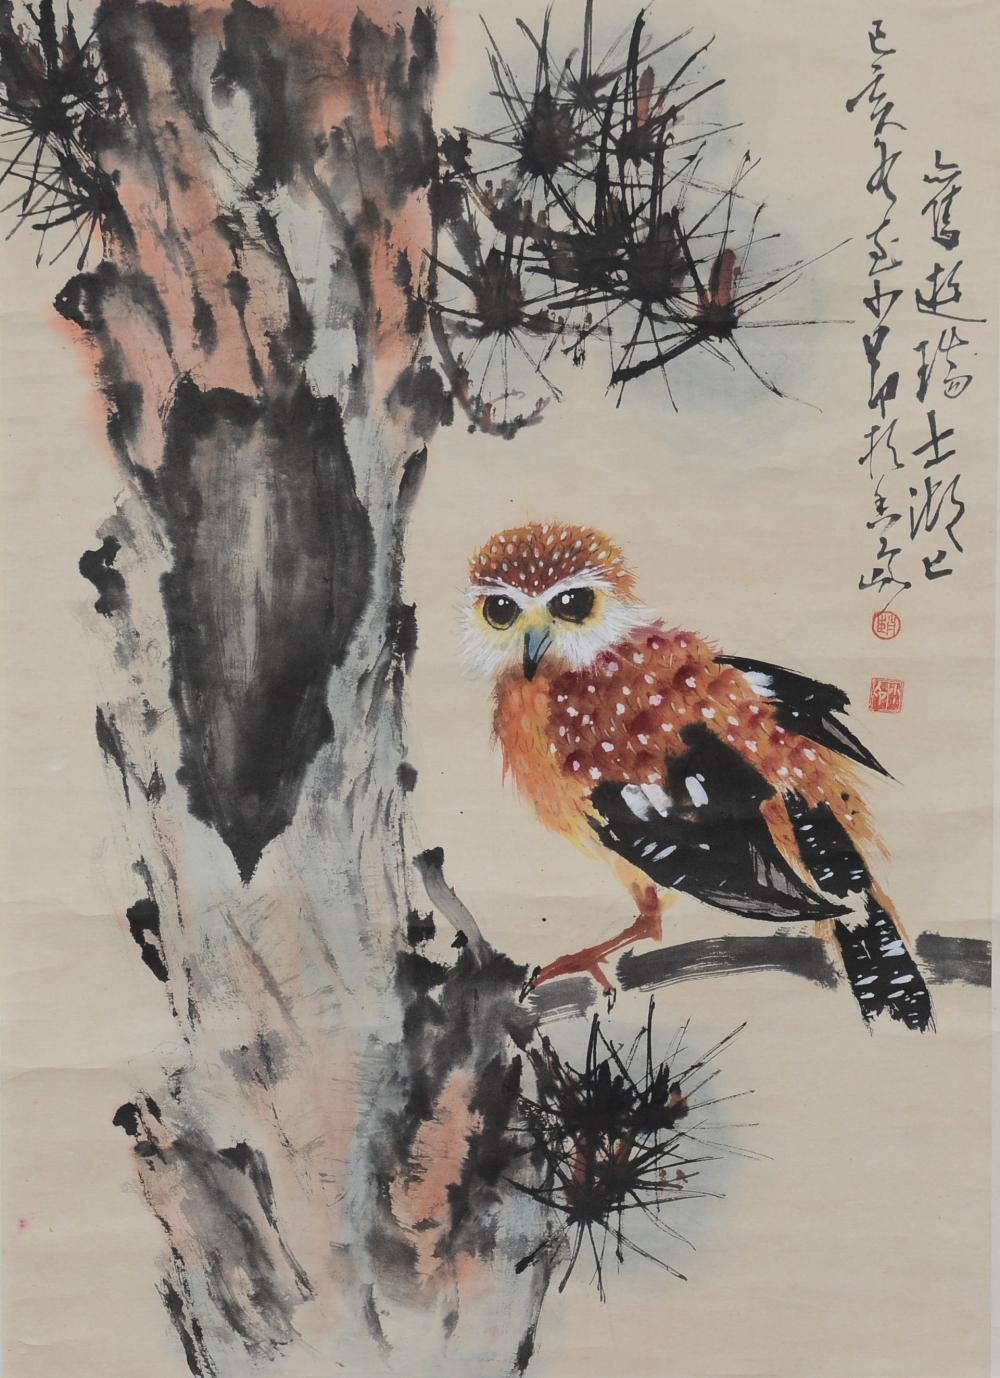 CHINESE PAINTING OF AN OWL BY ZHAO SHAOANG